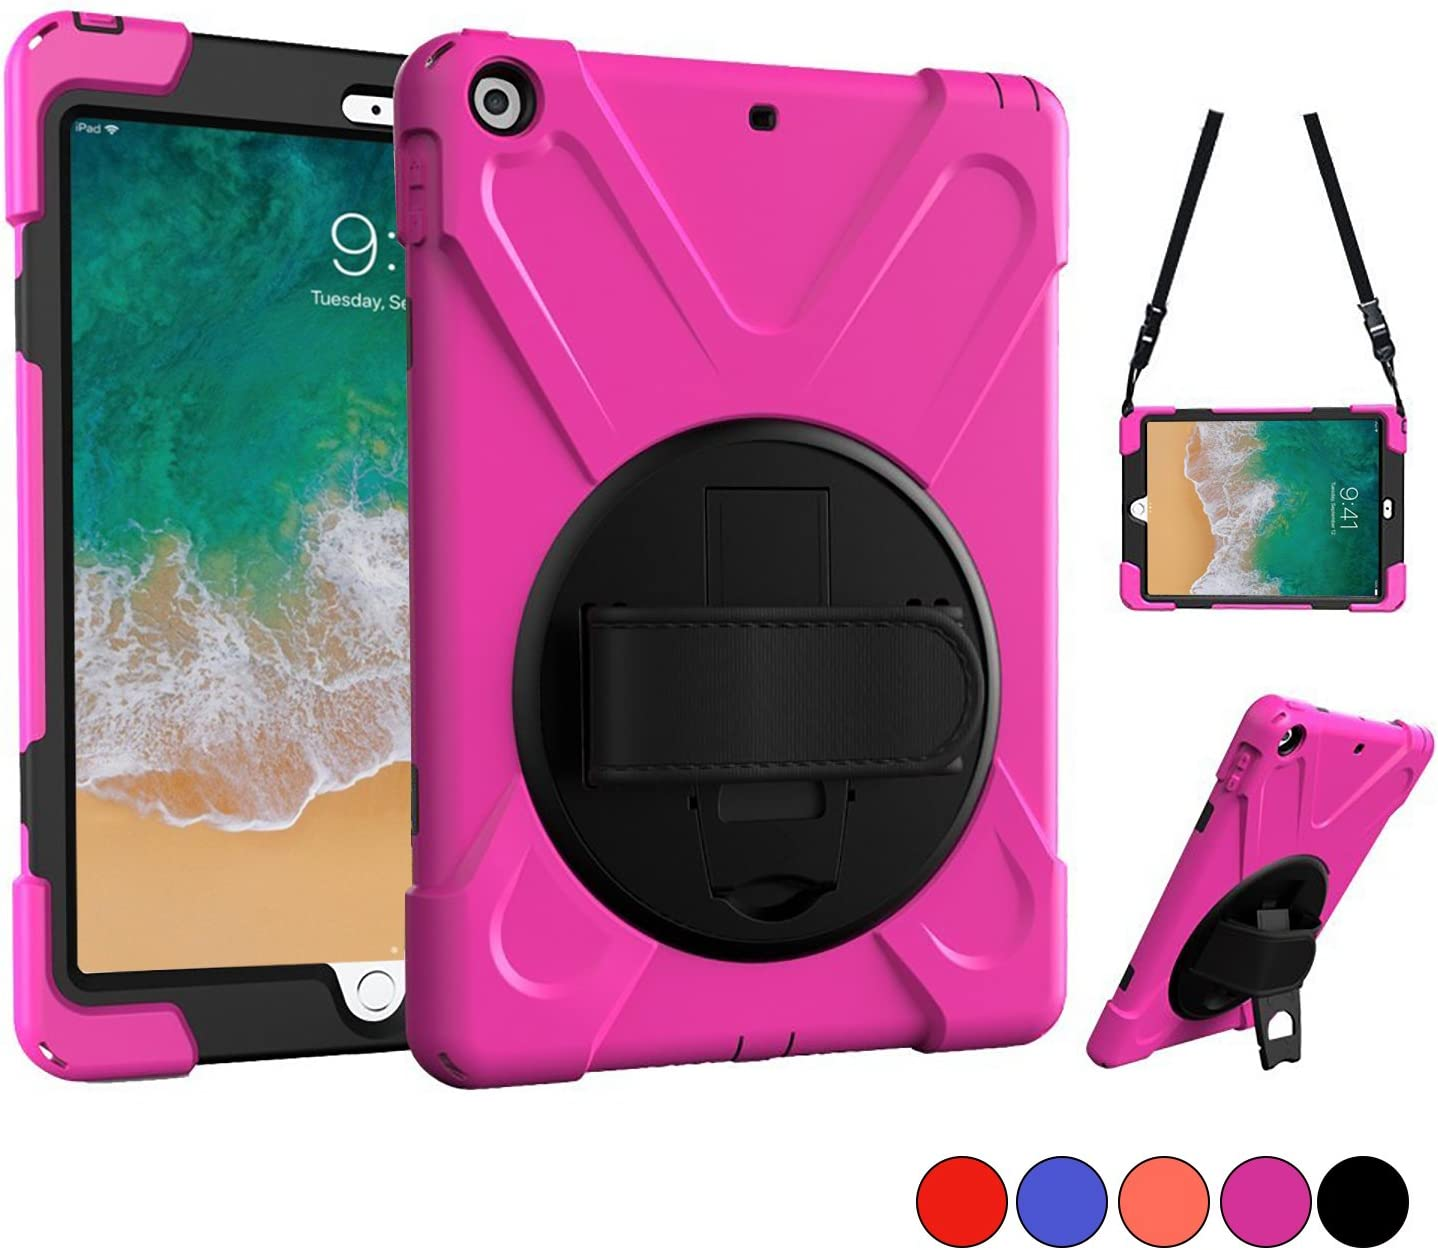 New iPad 9.7 2018 2017 Case, iPad 5th 6th Generation Case, Protective Case with Shoulder Strap, Hand Grip & 360 Rotating Stand, Heavy Duty Hard Case for Kids 9.7 Inch A1822 A1823 A1893 A1954 (Pink)